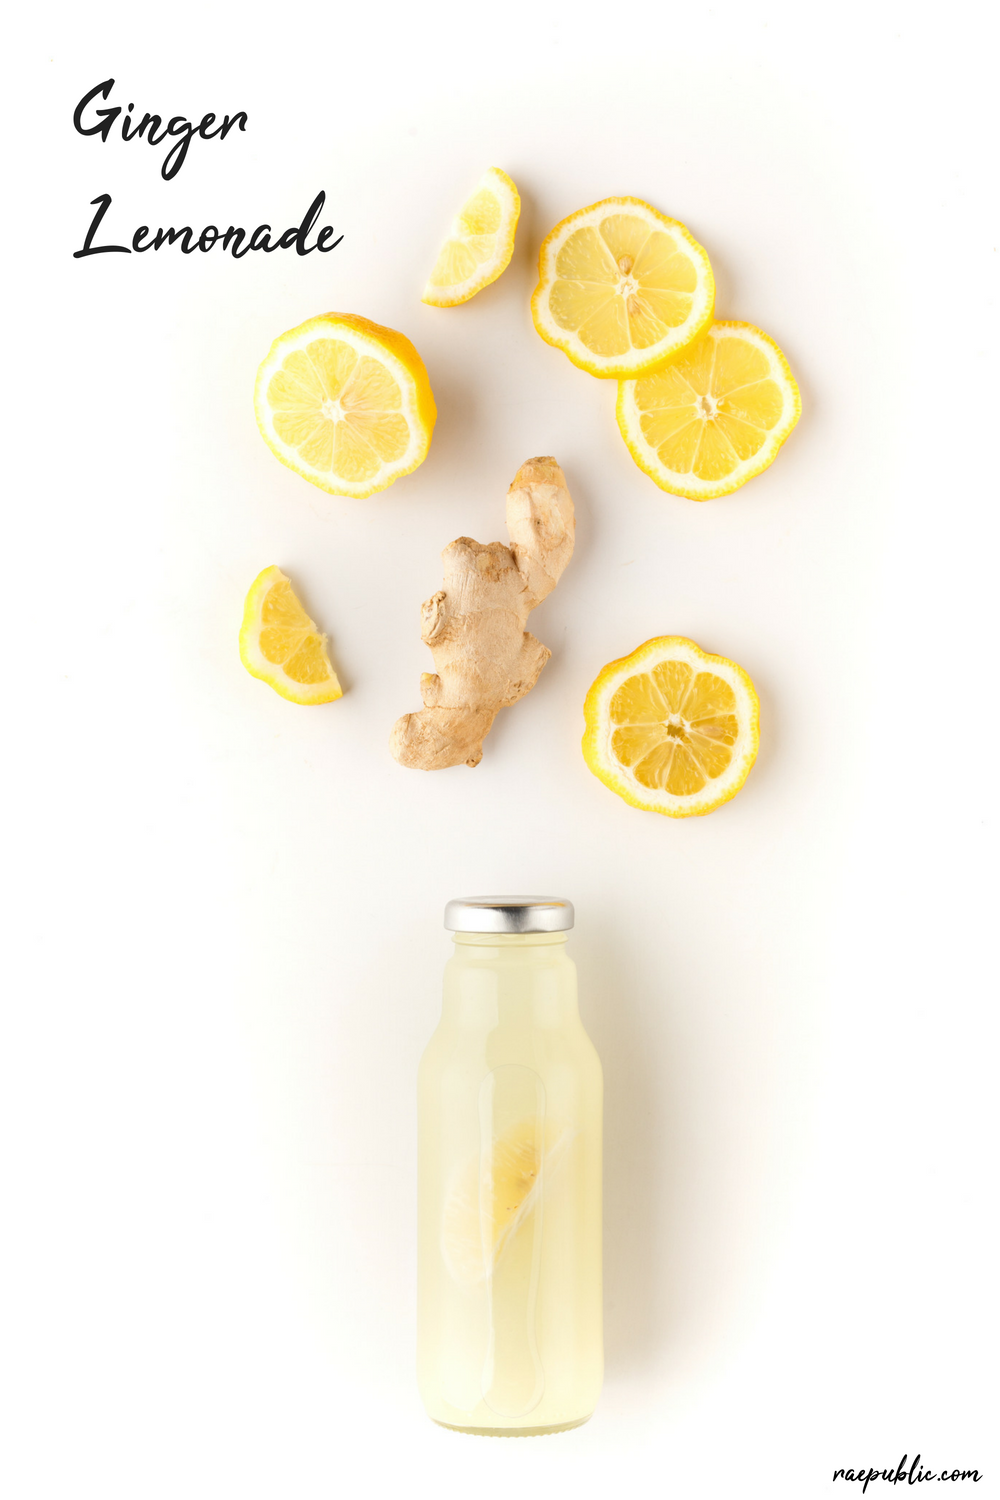 Easy vegan ginger lemonade made with fresh -squeezed lemon juice, all-natural maple syrup and organic grated ginger.